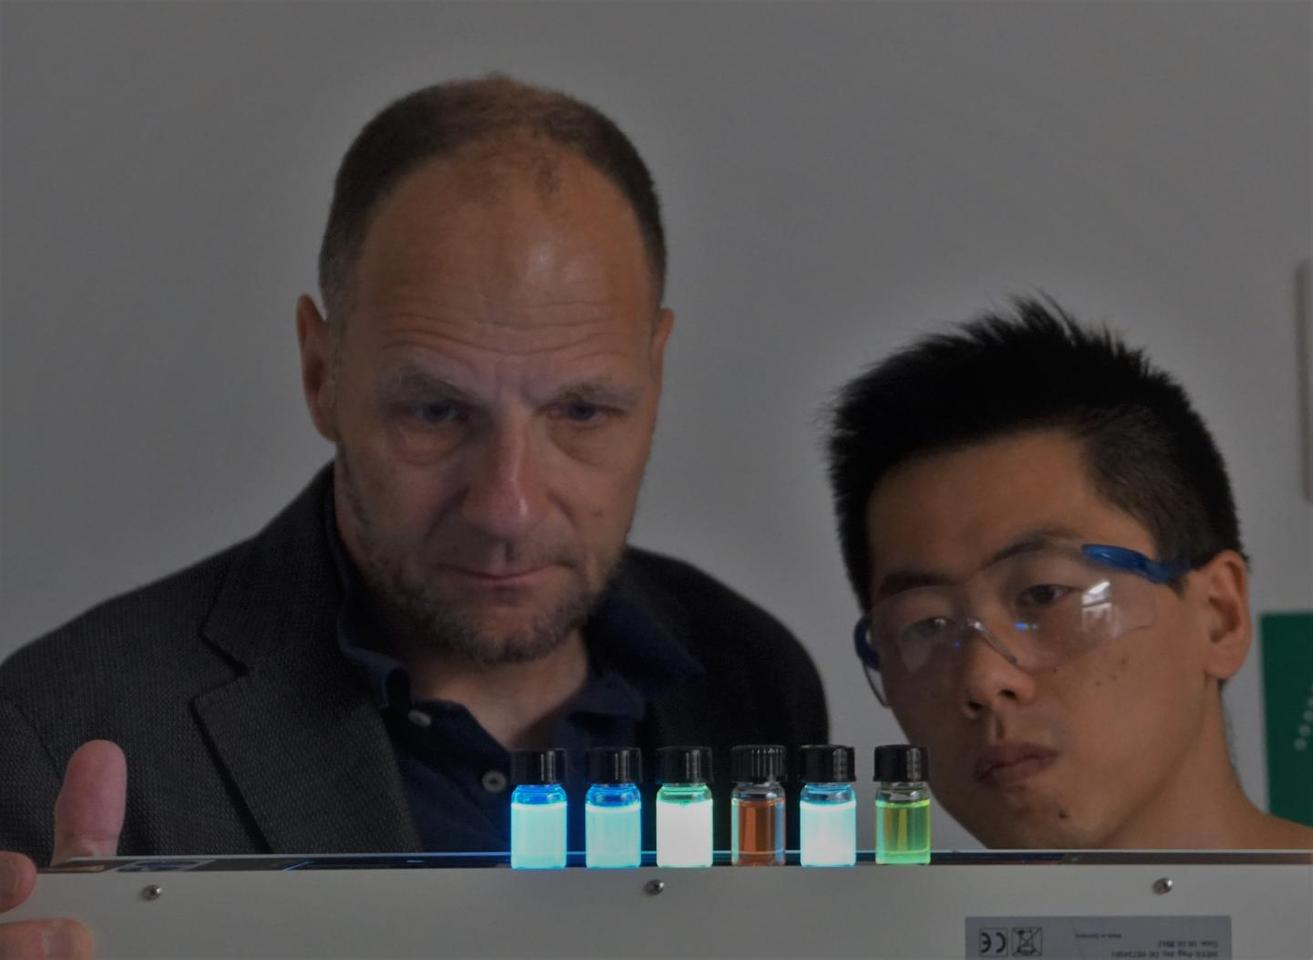 Prof. Uwe Bunz (left) and doctoral student Jinsong Han, with a selection of glowing polymer dyes